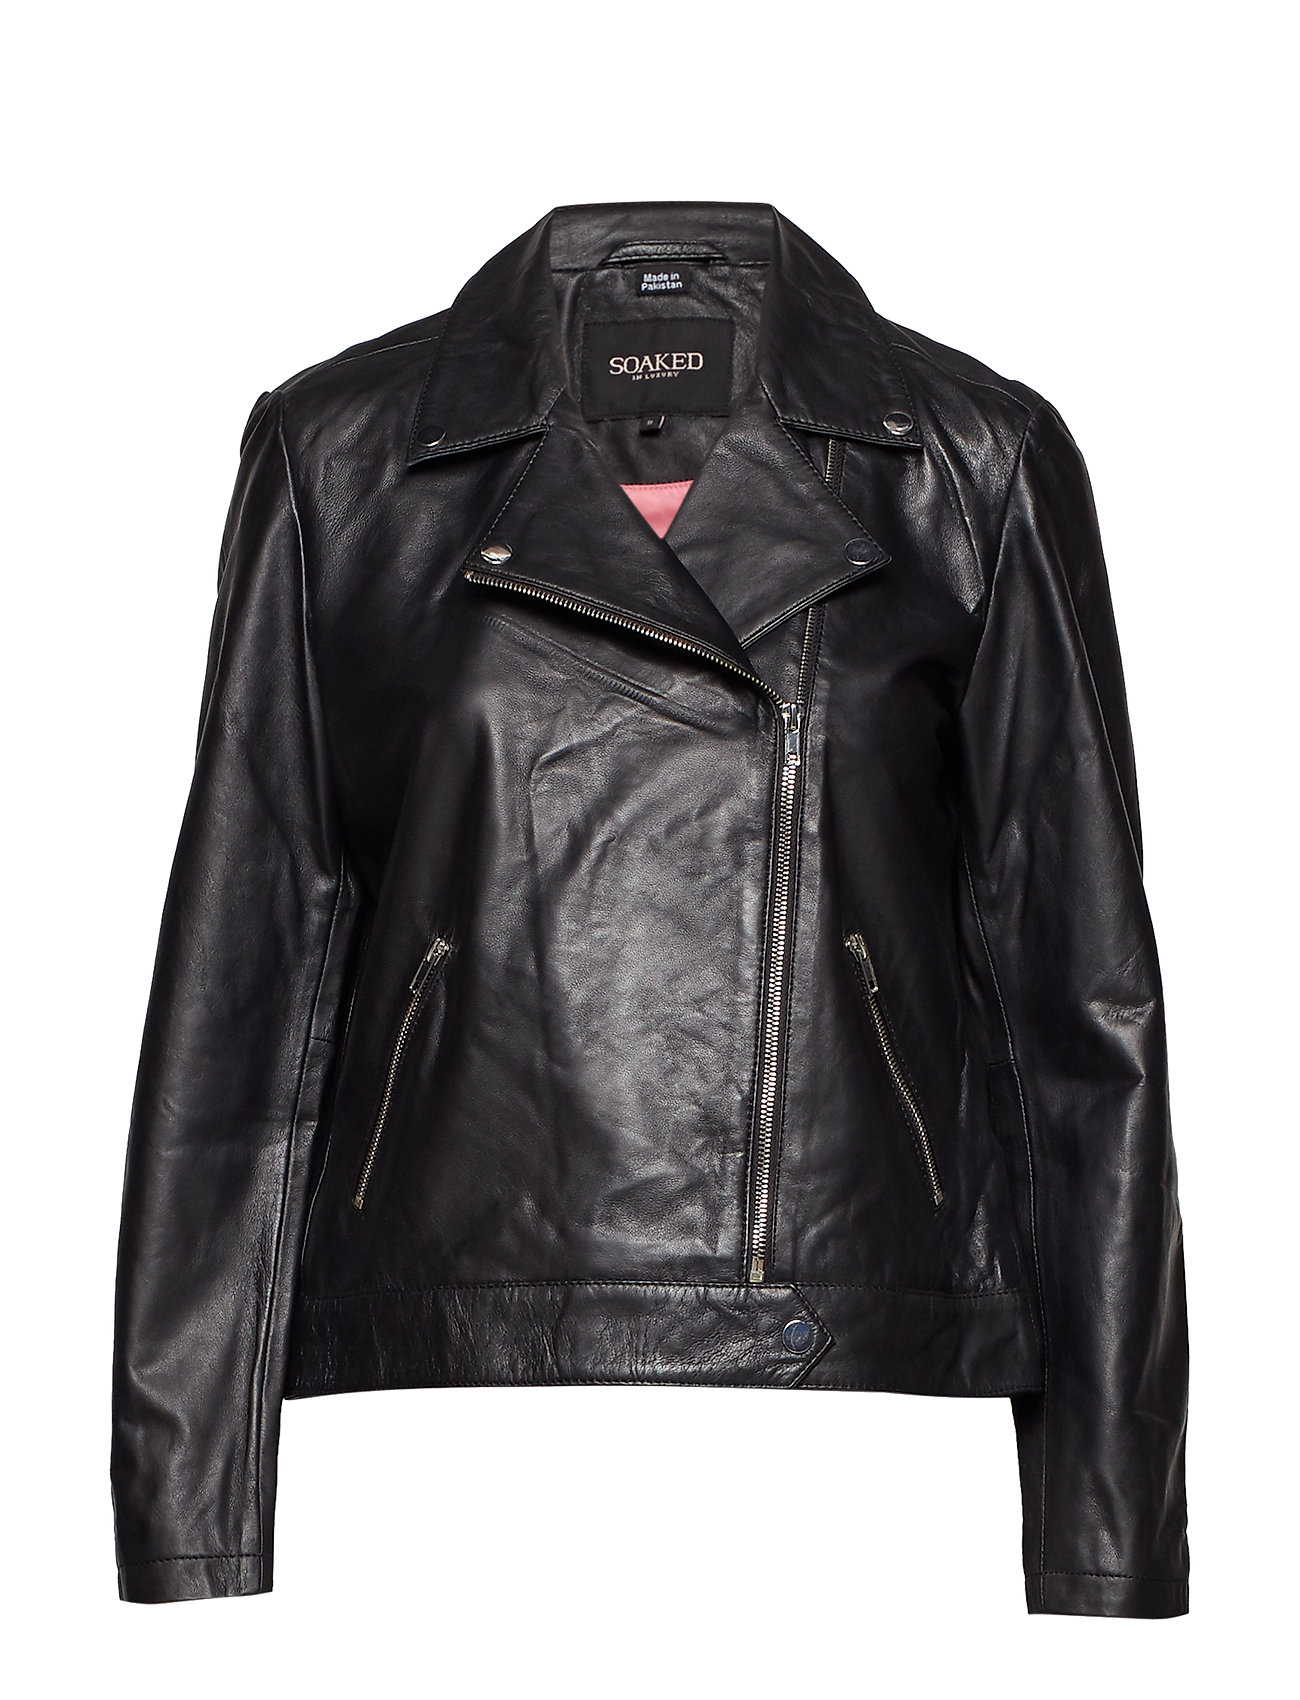 Image of Maeve Leather Jacket Ls Læderjakke Skindjakke Sort Soaked In Luxury (3181146435)